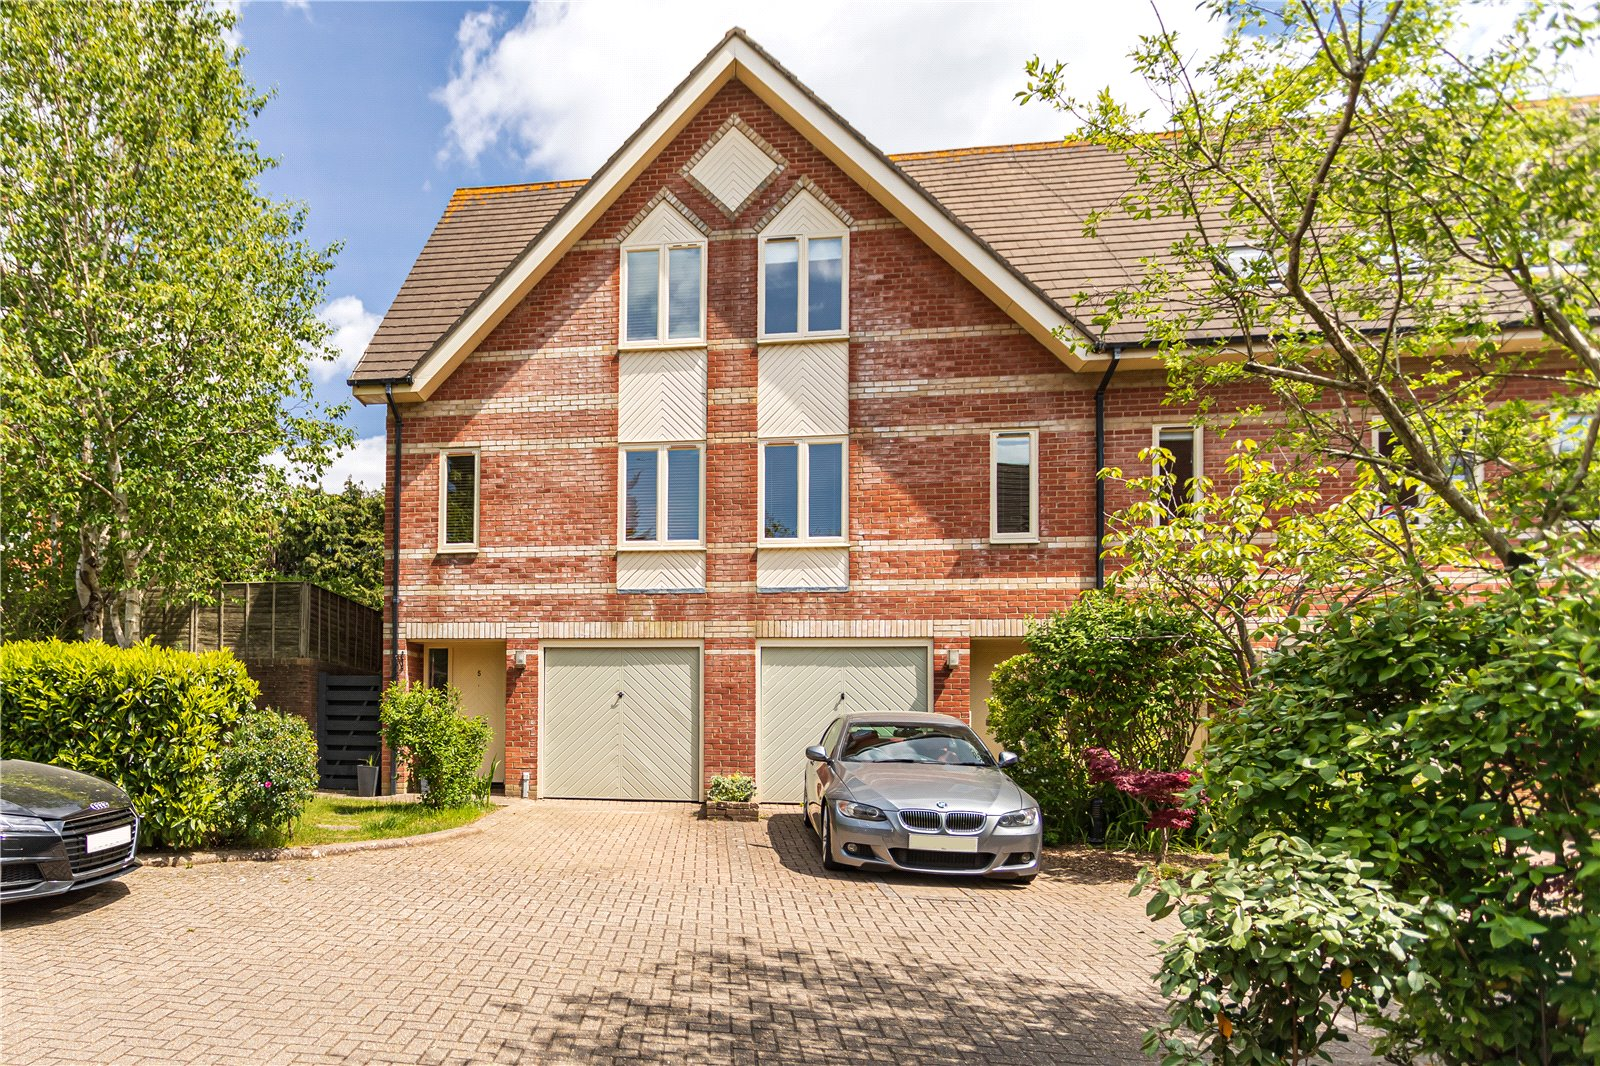 3 bed house for sale in Church Mews, 17 Church Road - Property Image 1